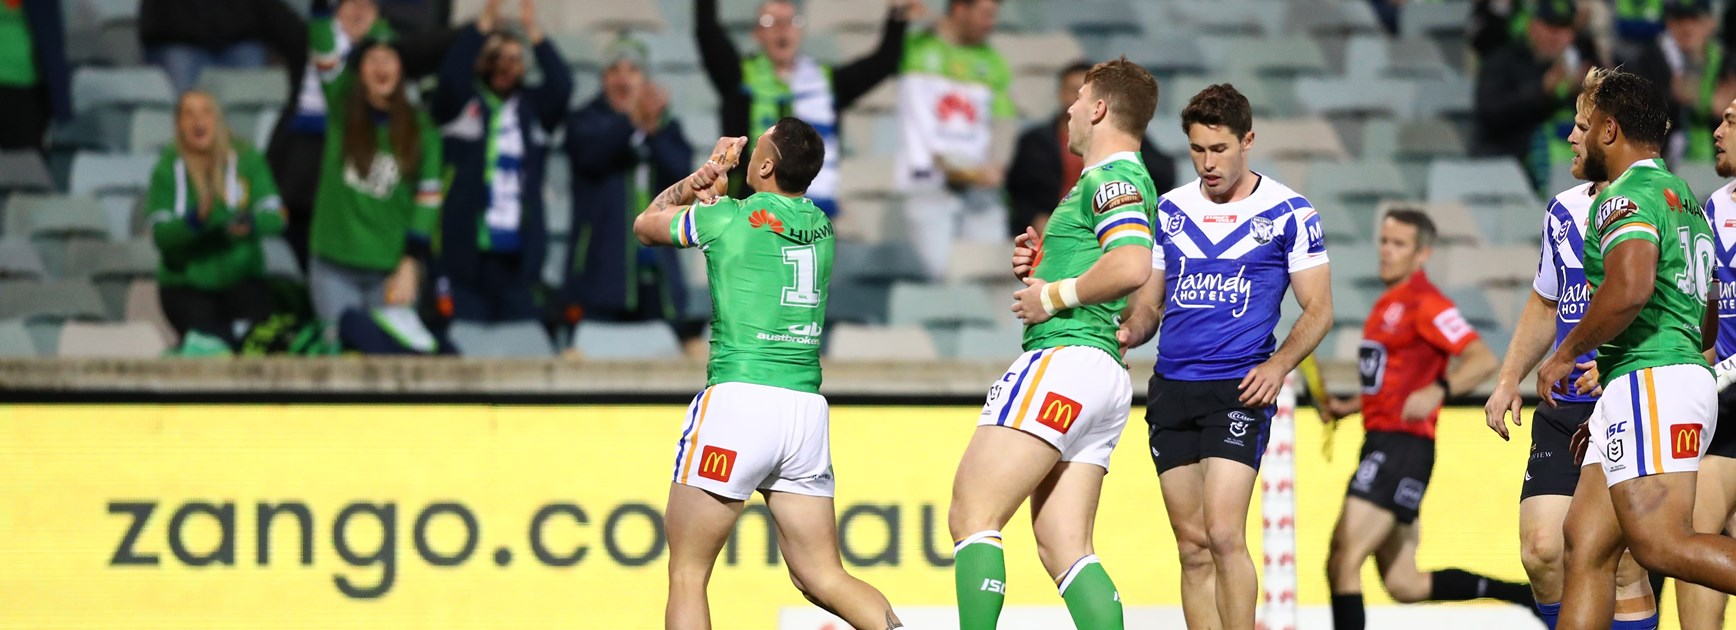 Ticket Information: Raiders v Roosters